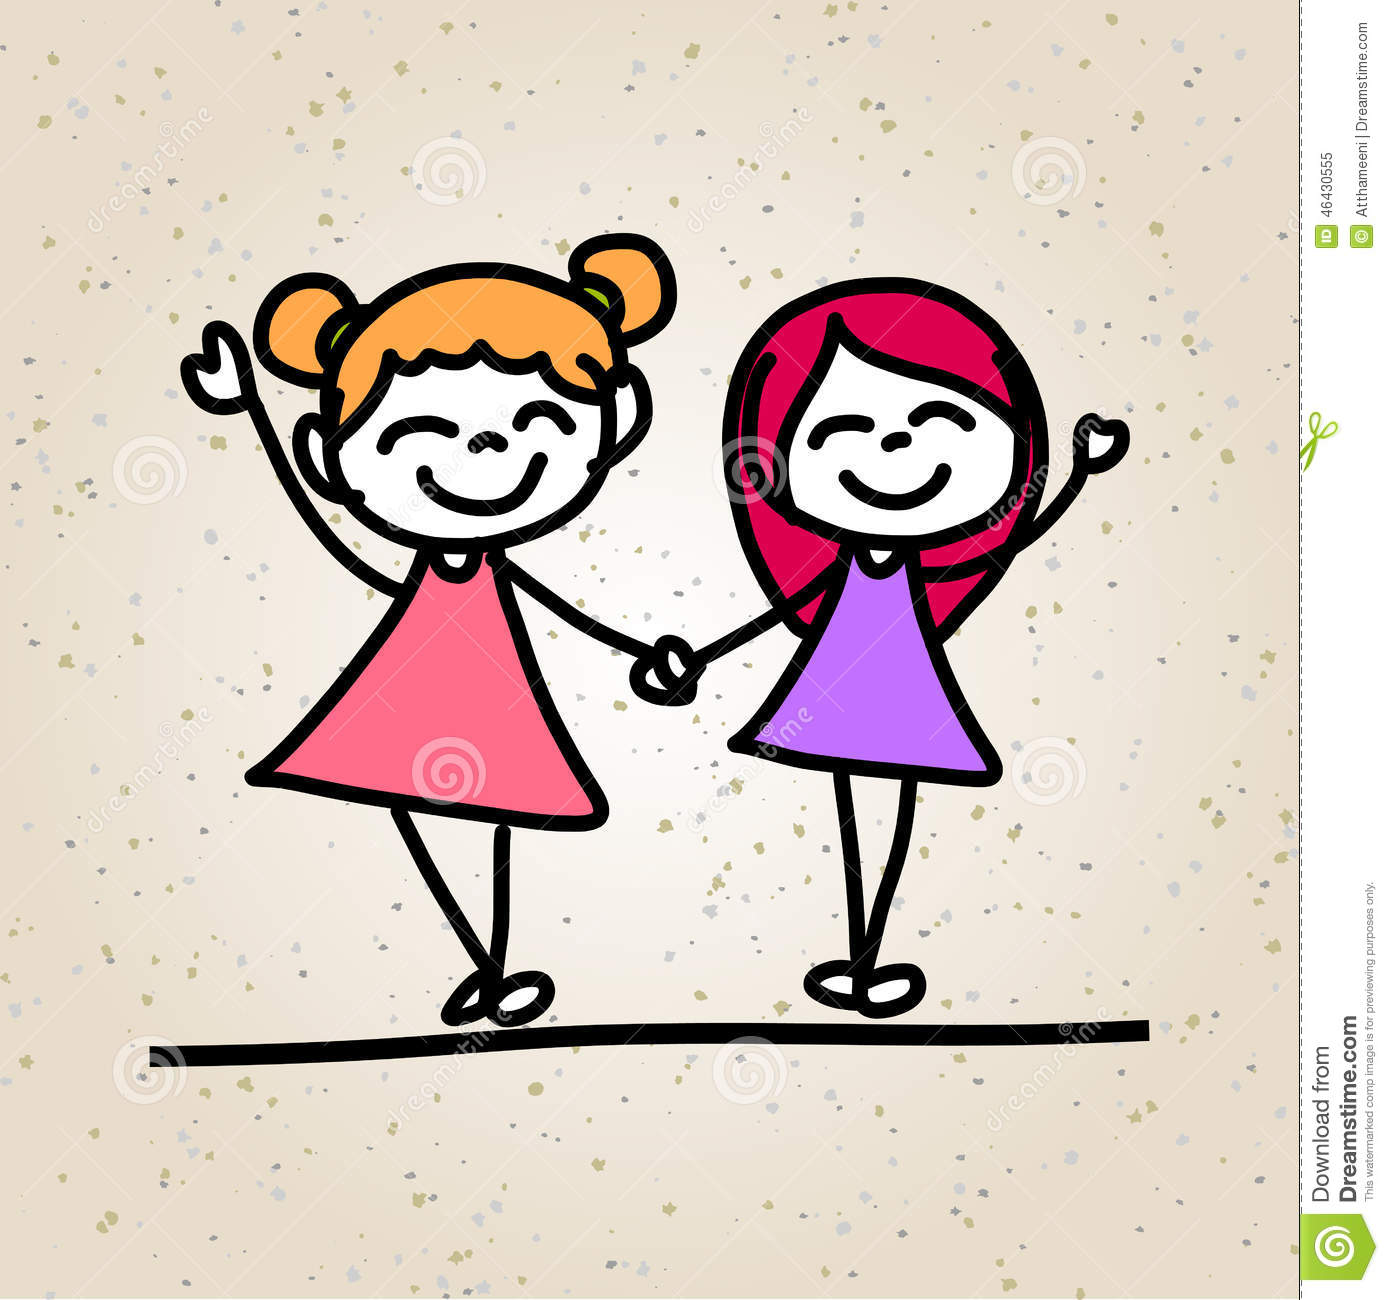 hand drawing abstract cartoon happy kids stock illustration